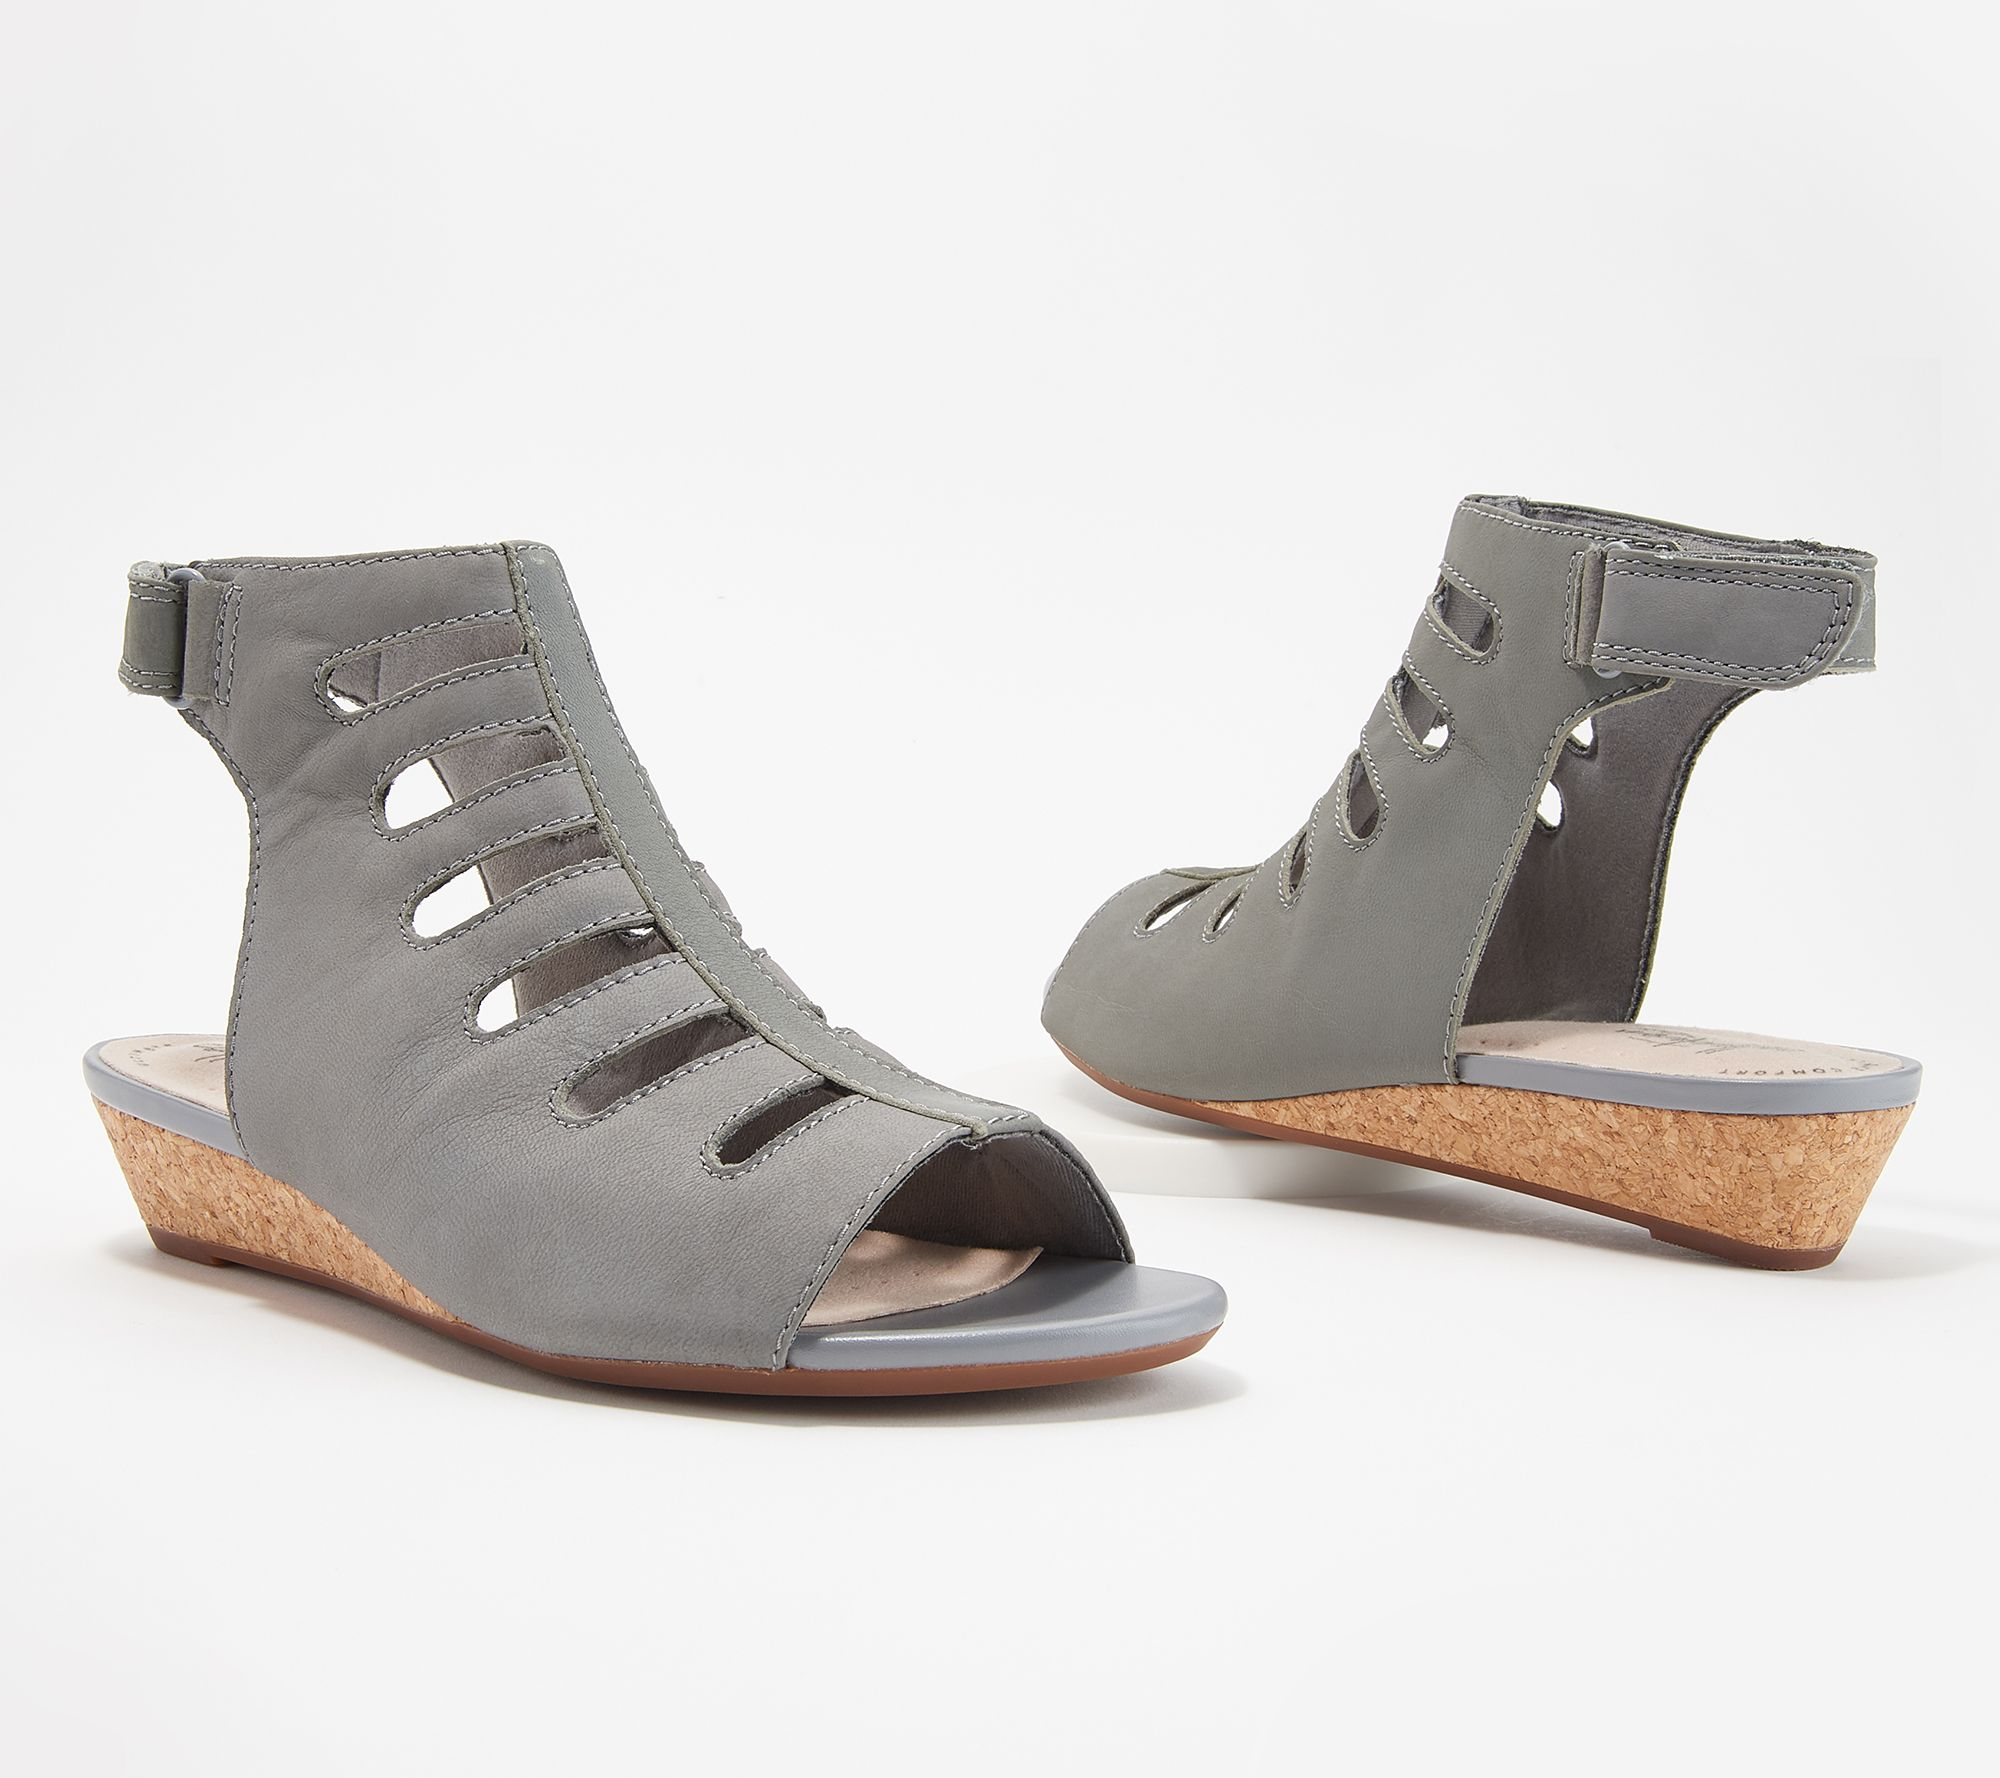 88932aa2345 Clarks Collection Leather Cutout Wedge Sandals - Abigail Sing - Page 1 —  QVC.com